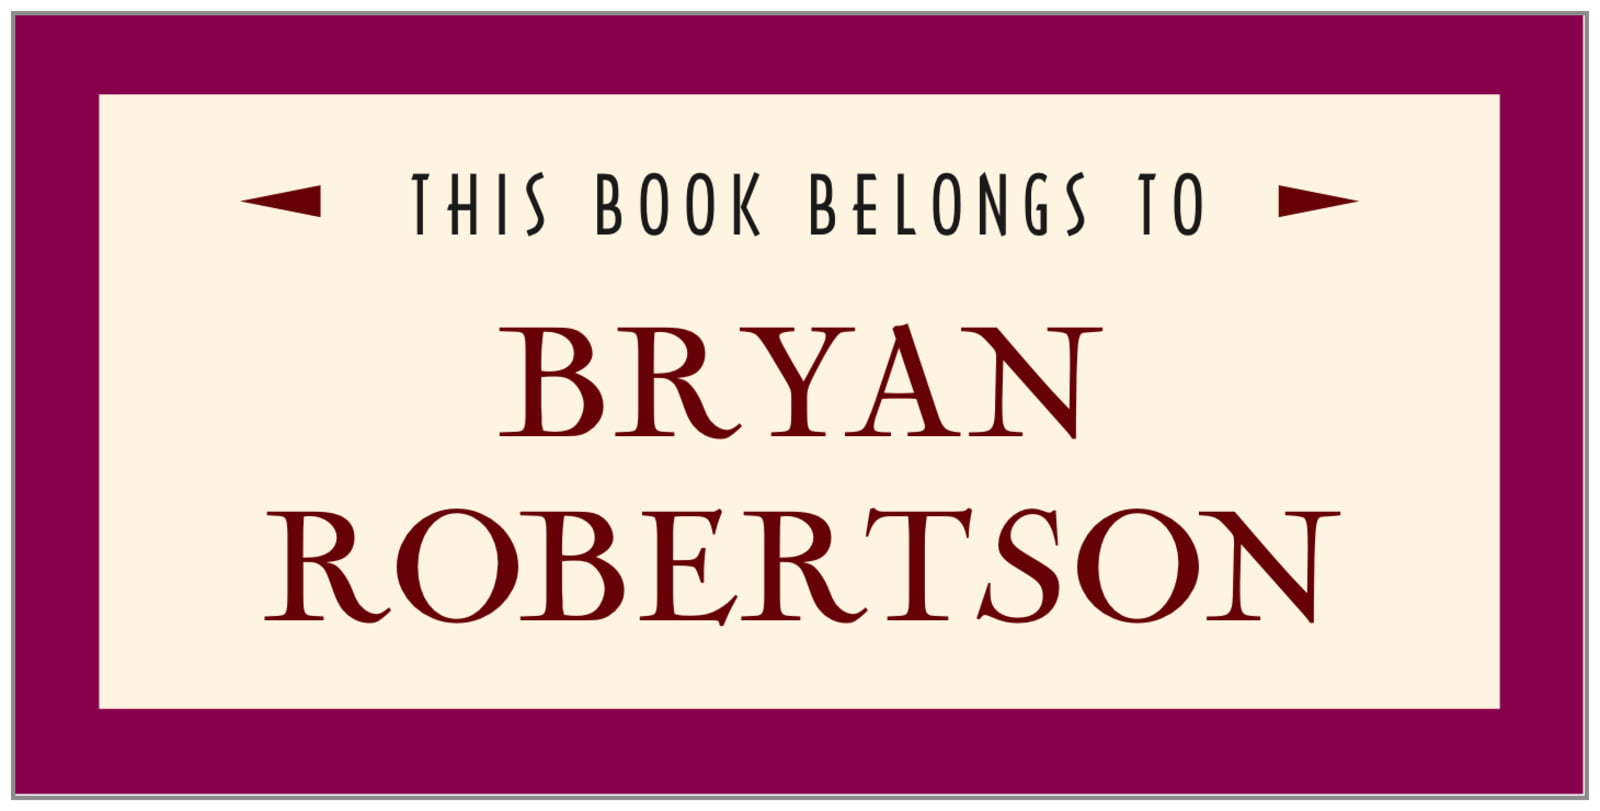 bookplates for everyone - burgundy - classic oldstyle (set of 24)